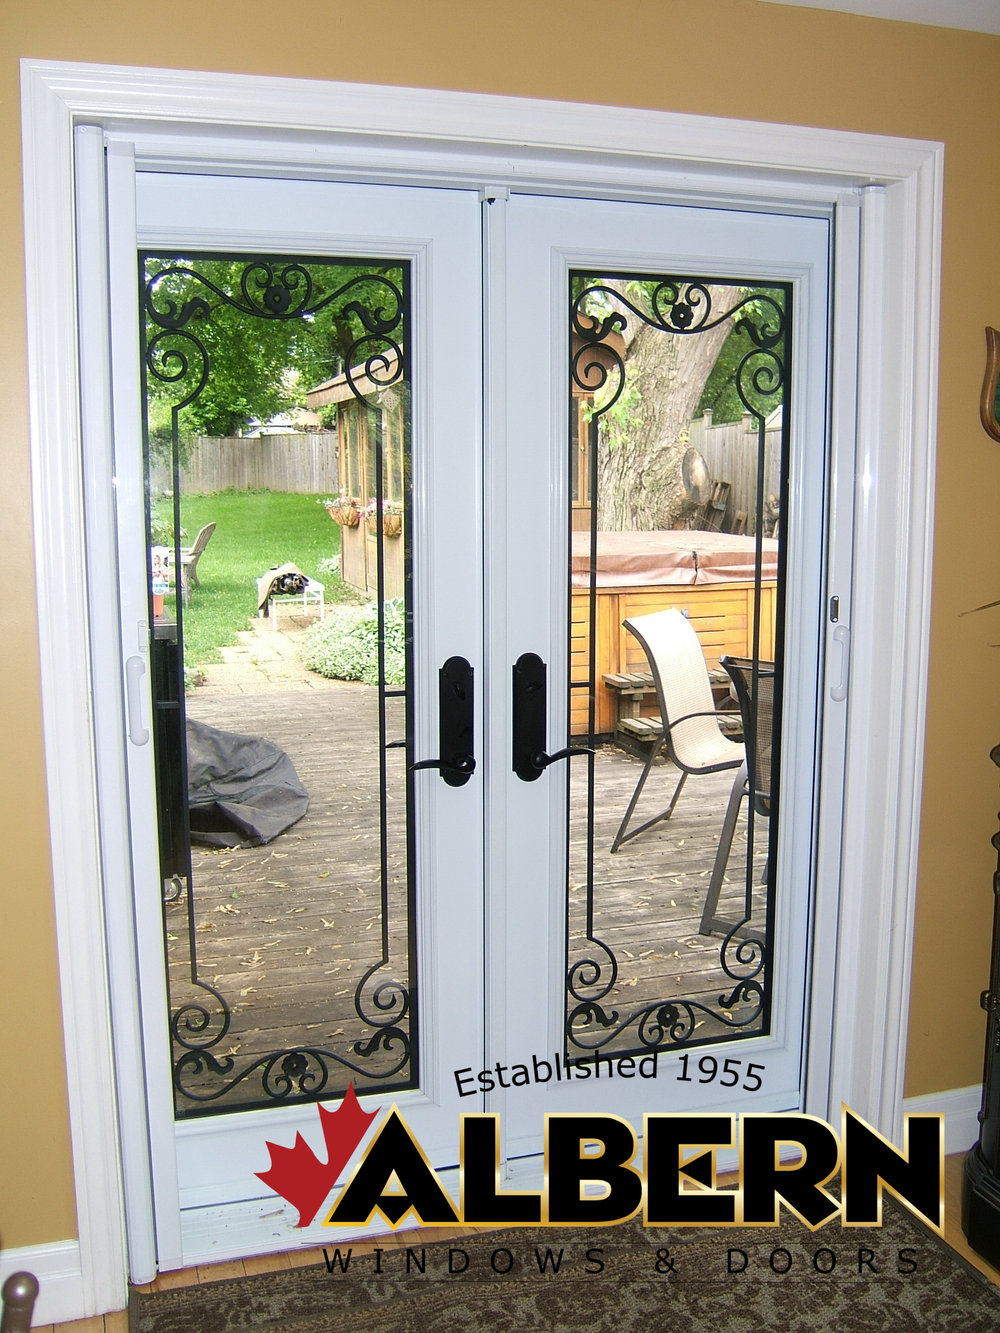 Albern Windows and Doors (28).jpg